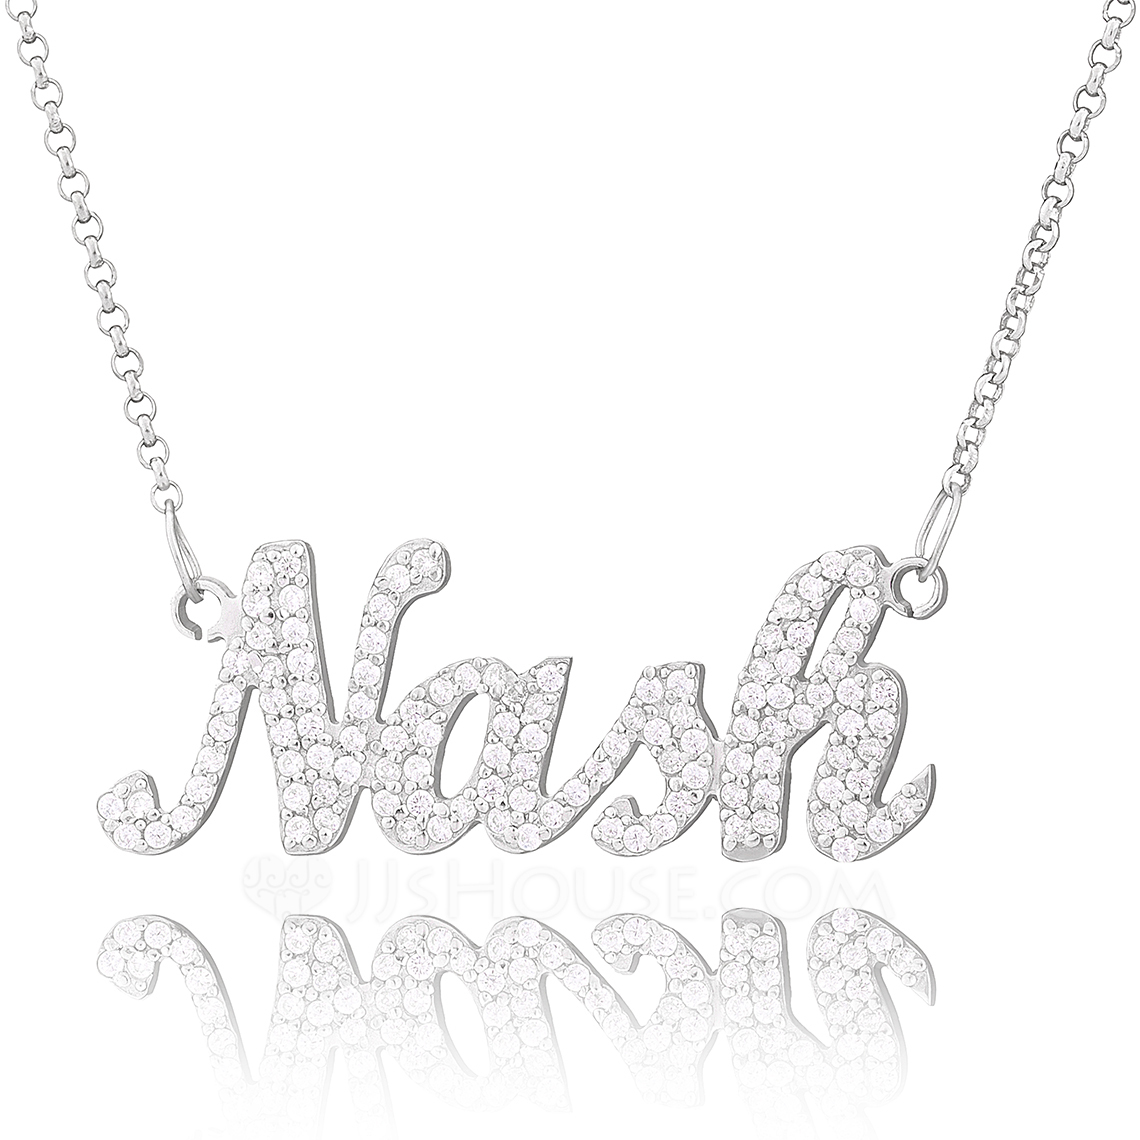 Bridesmaid Gifts - Personalized Fascinating Name Necklace